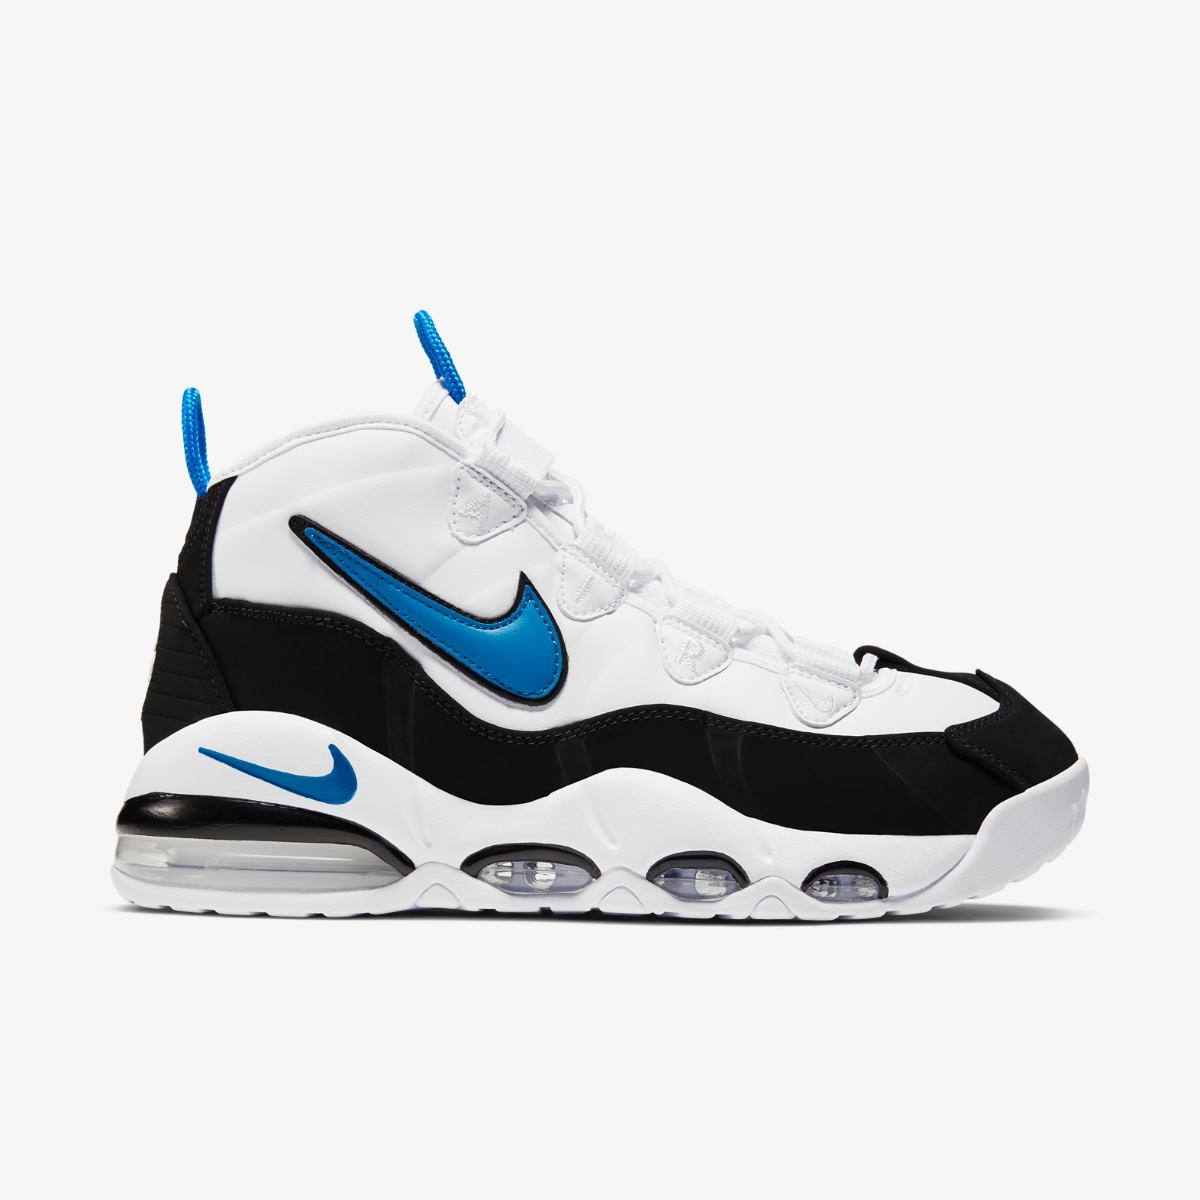 Кроссовки Nike AIR MAX UPTEMPO 95 CK0892-103 фото